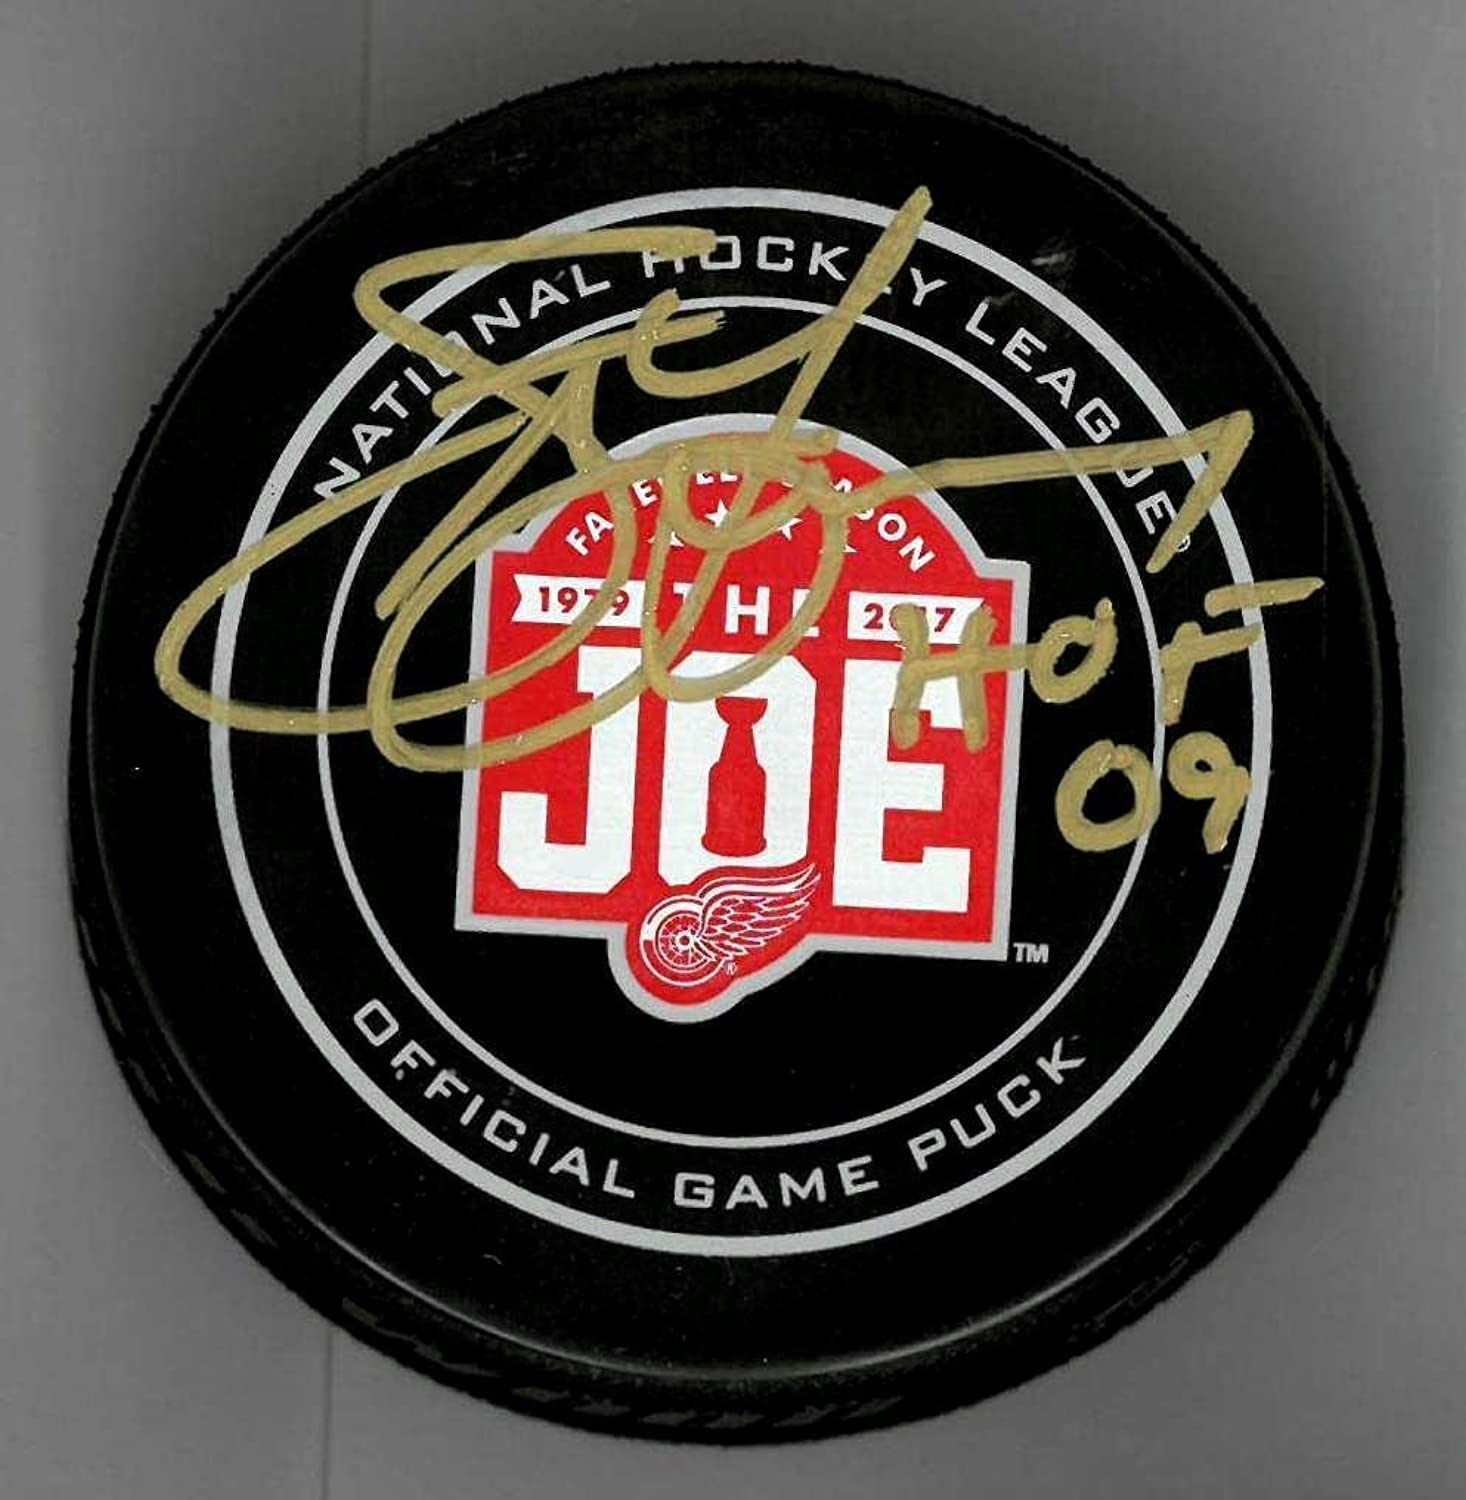 Steve Yzerman Autographed Farewell to The Joe Official Game Puck Inscribed HOF 09  Autographed NHL Pucks